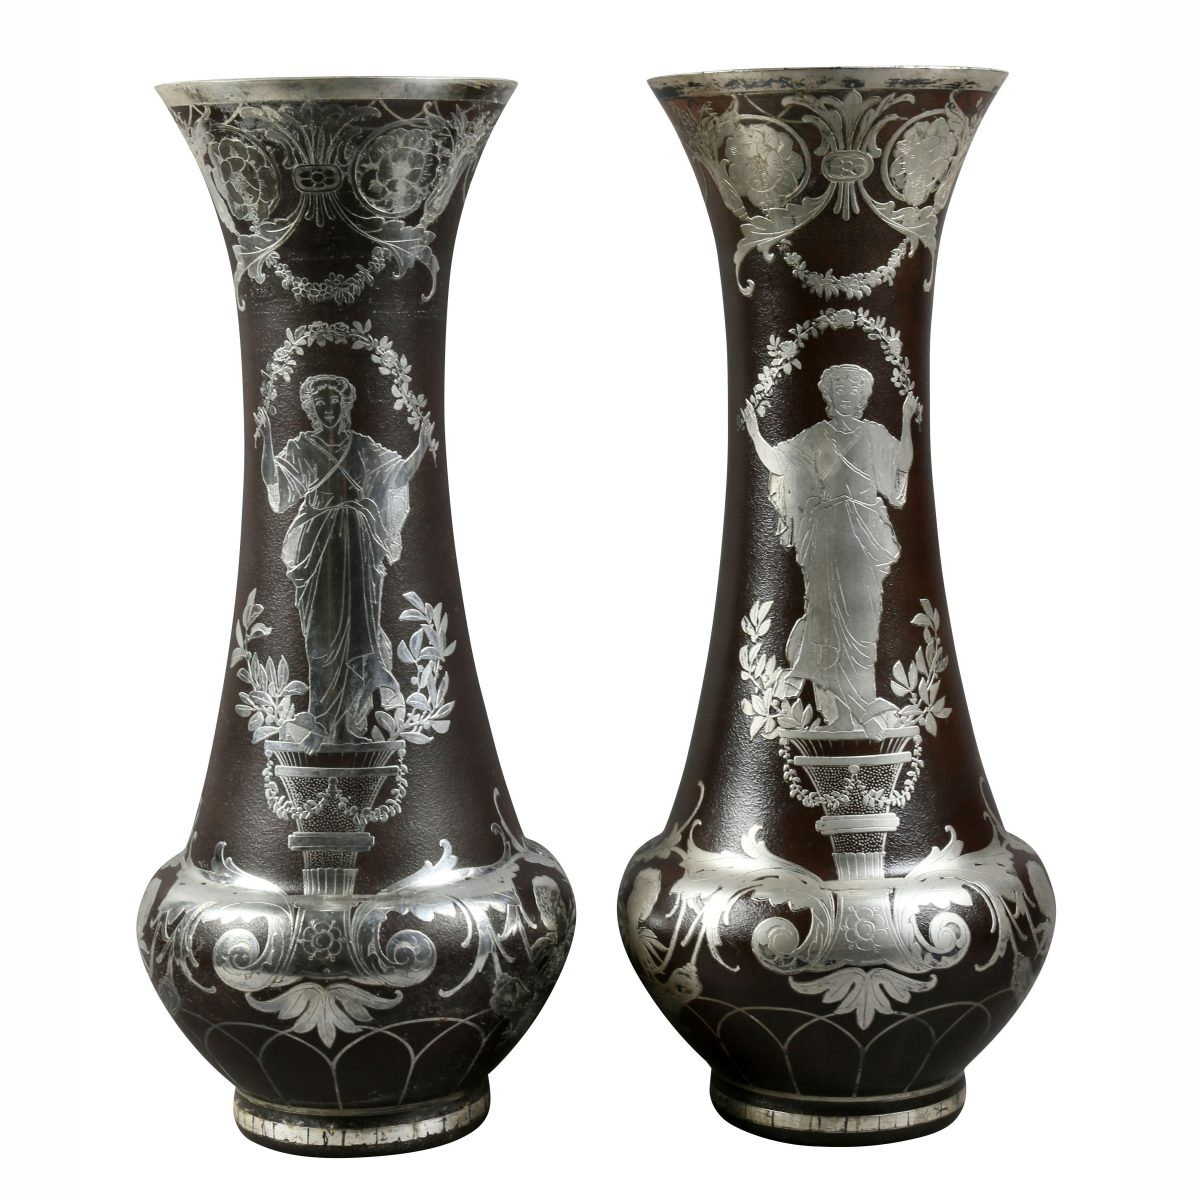 Pair of french art glass vases with silver overlay david neligan pair of french art glass vases with silver overlay reviewsmspy